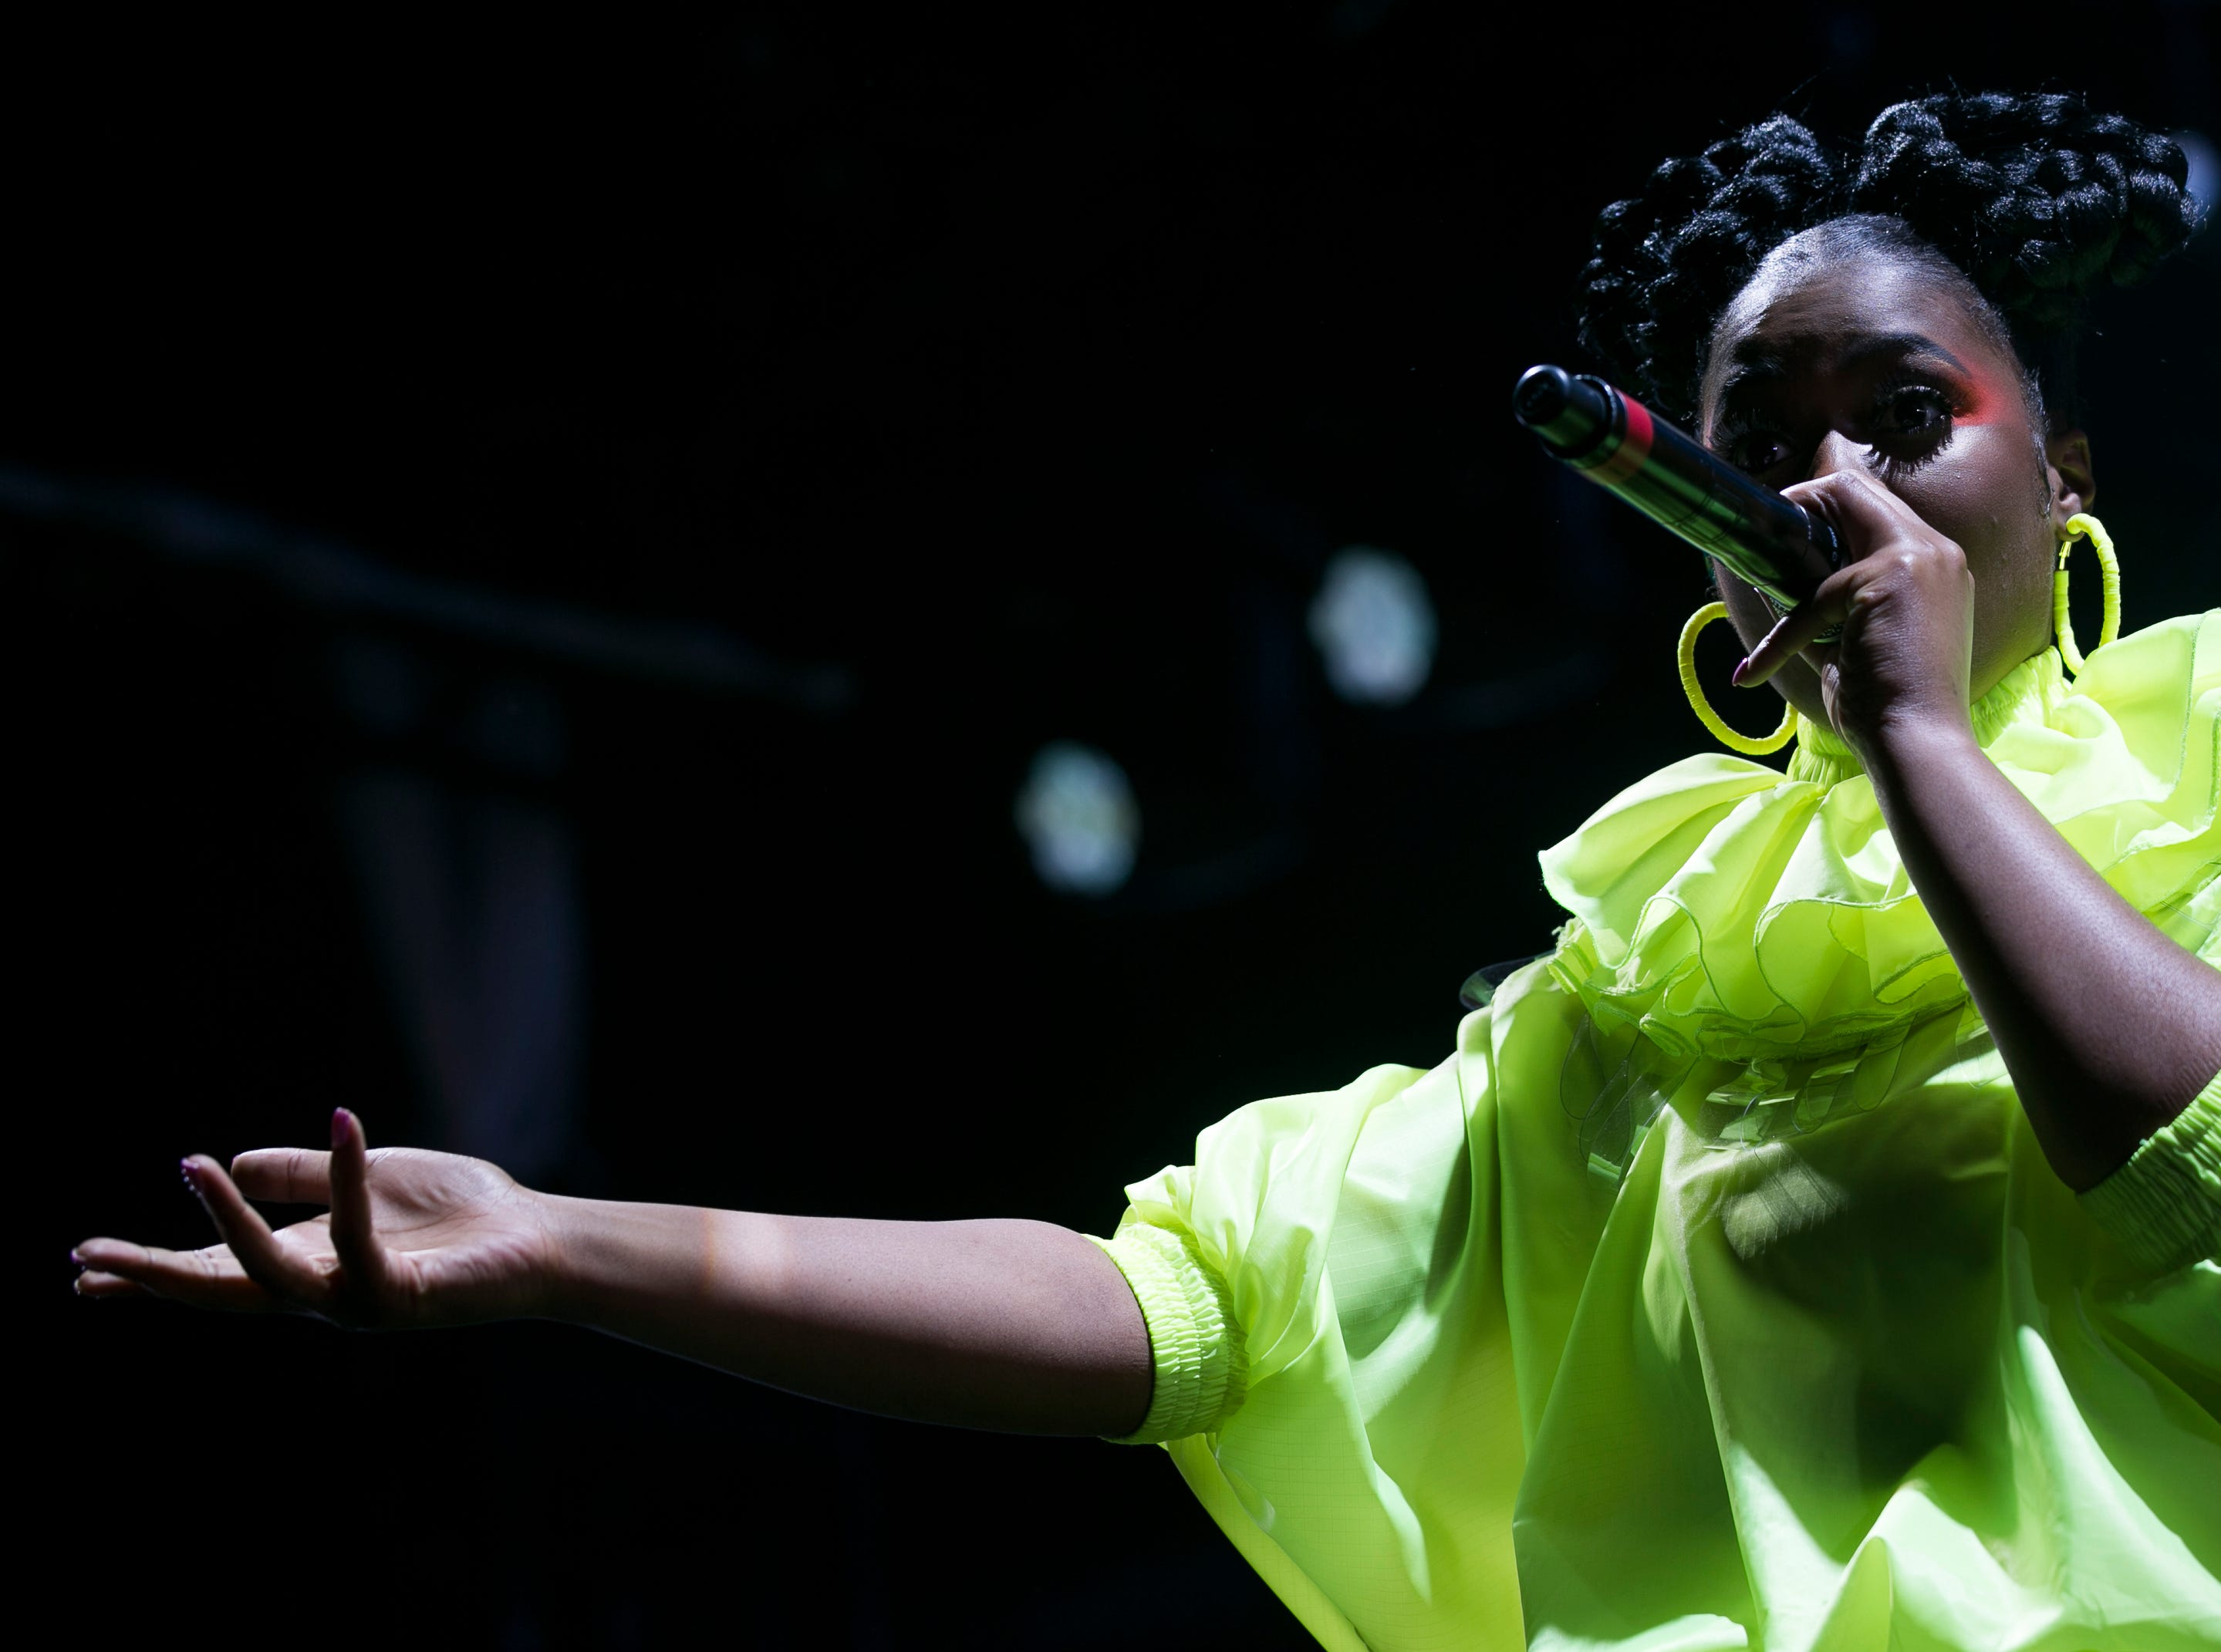 Tierra Whack performs on stage at the Coachella Valley Music and Arts Festival in Indio, Calif. on Fri. April 12, 2019.